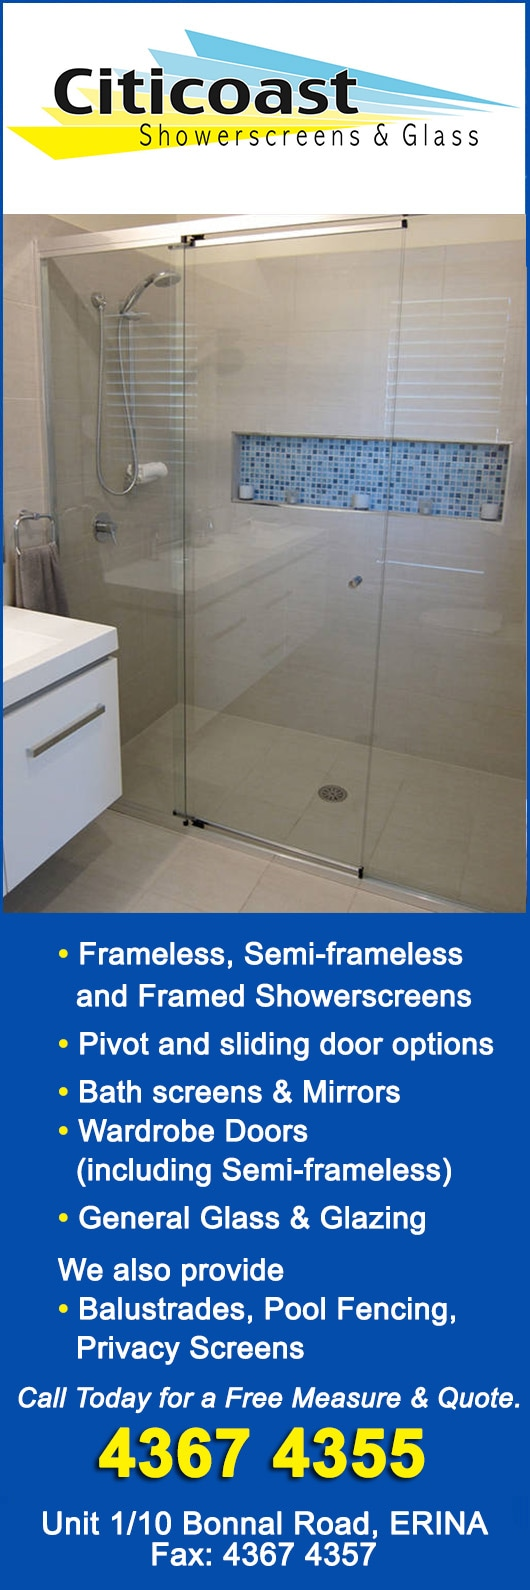 Citicoast Showerscreens & Glass - Shower Screens - 1/ 10 Bonnal Rd ...